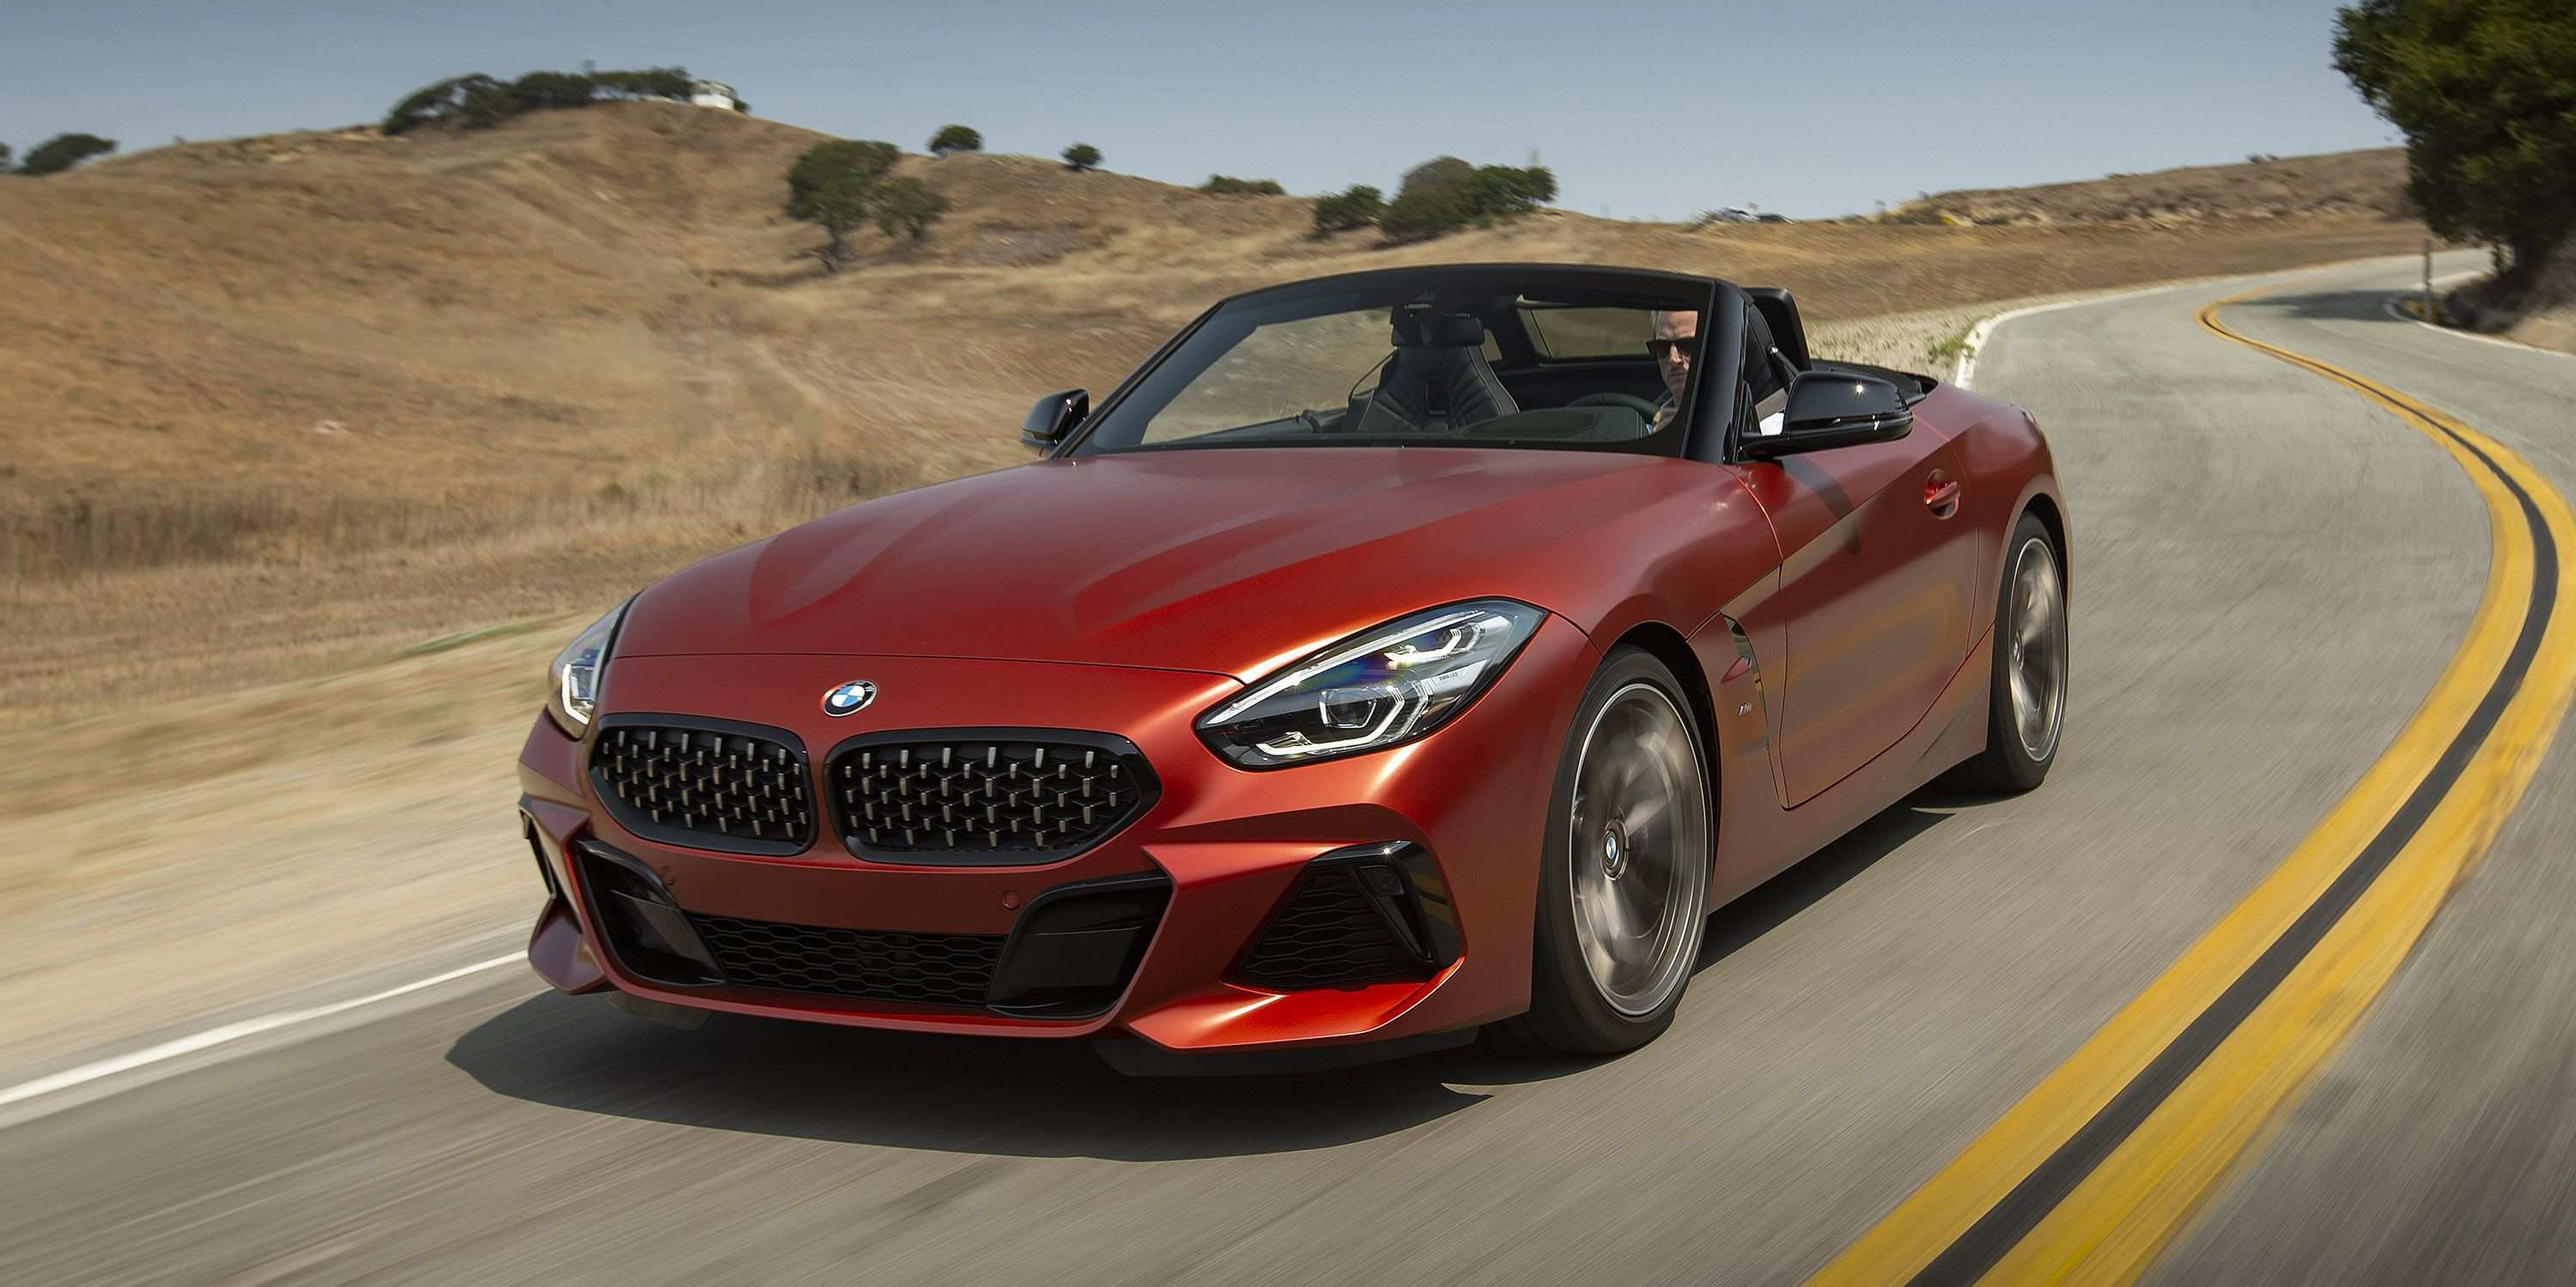 54 The 2020 BMW Z4 M Roadster Review